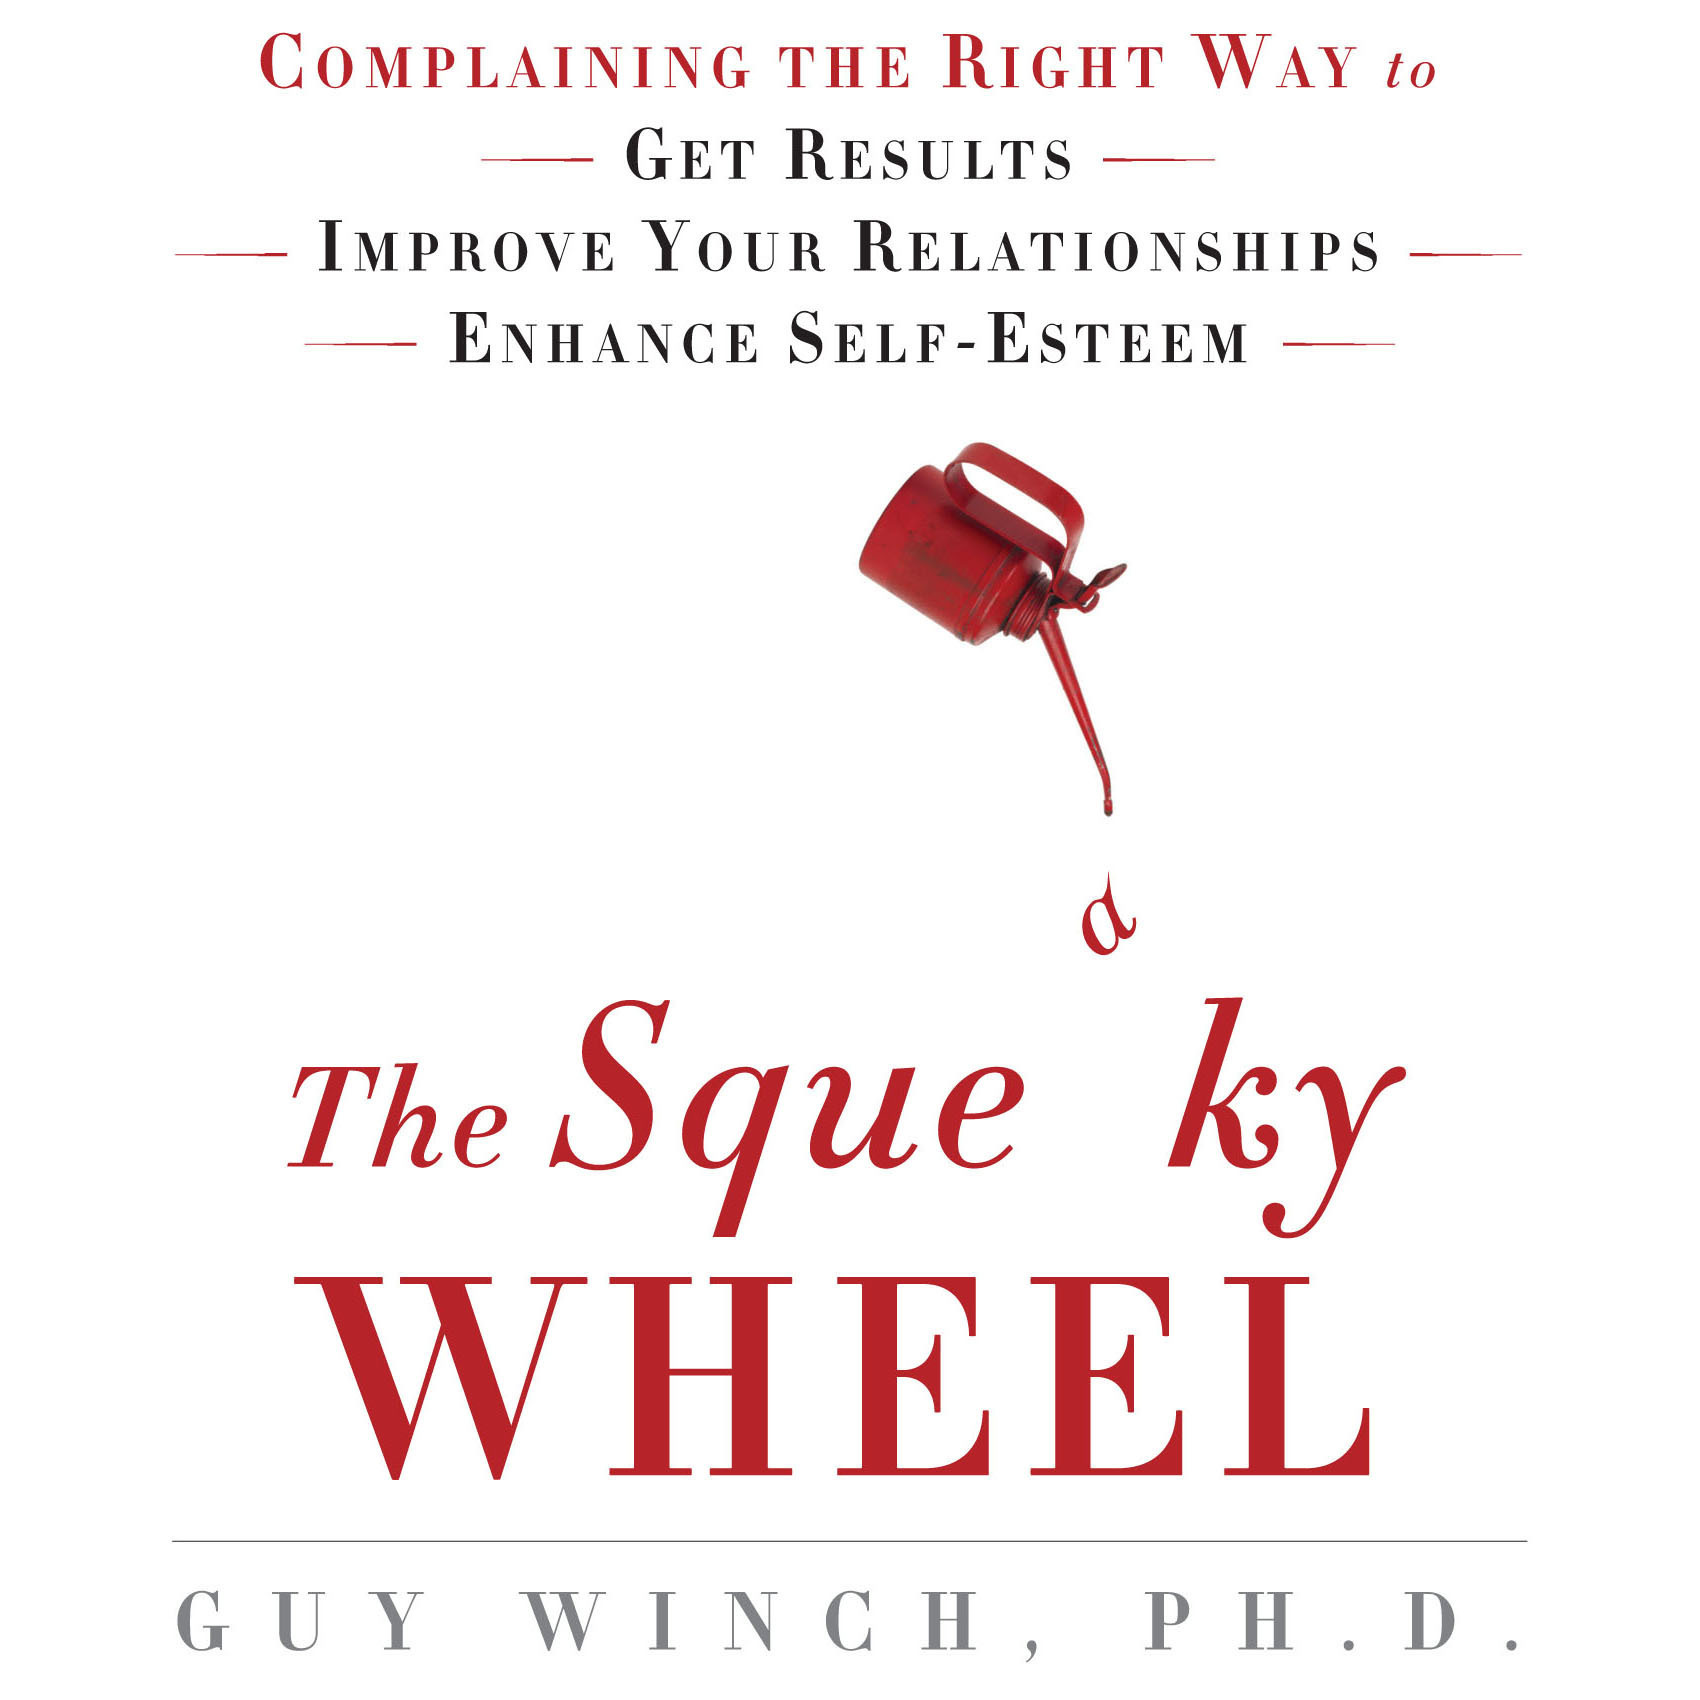 Printable The Squeaky Wheel: Complaining the Right Way to Get Results, Improve Your Relationships, and Enhance Self-Esteem Audiobook Cover Art